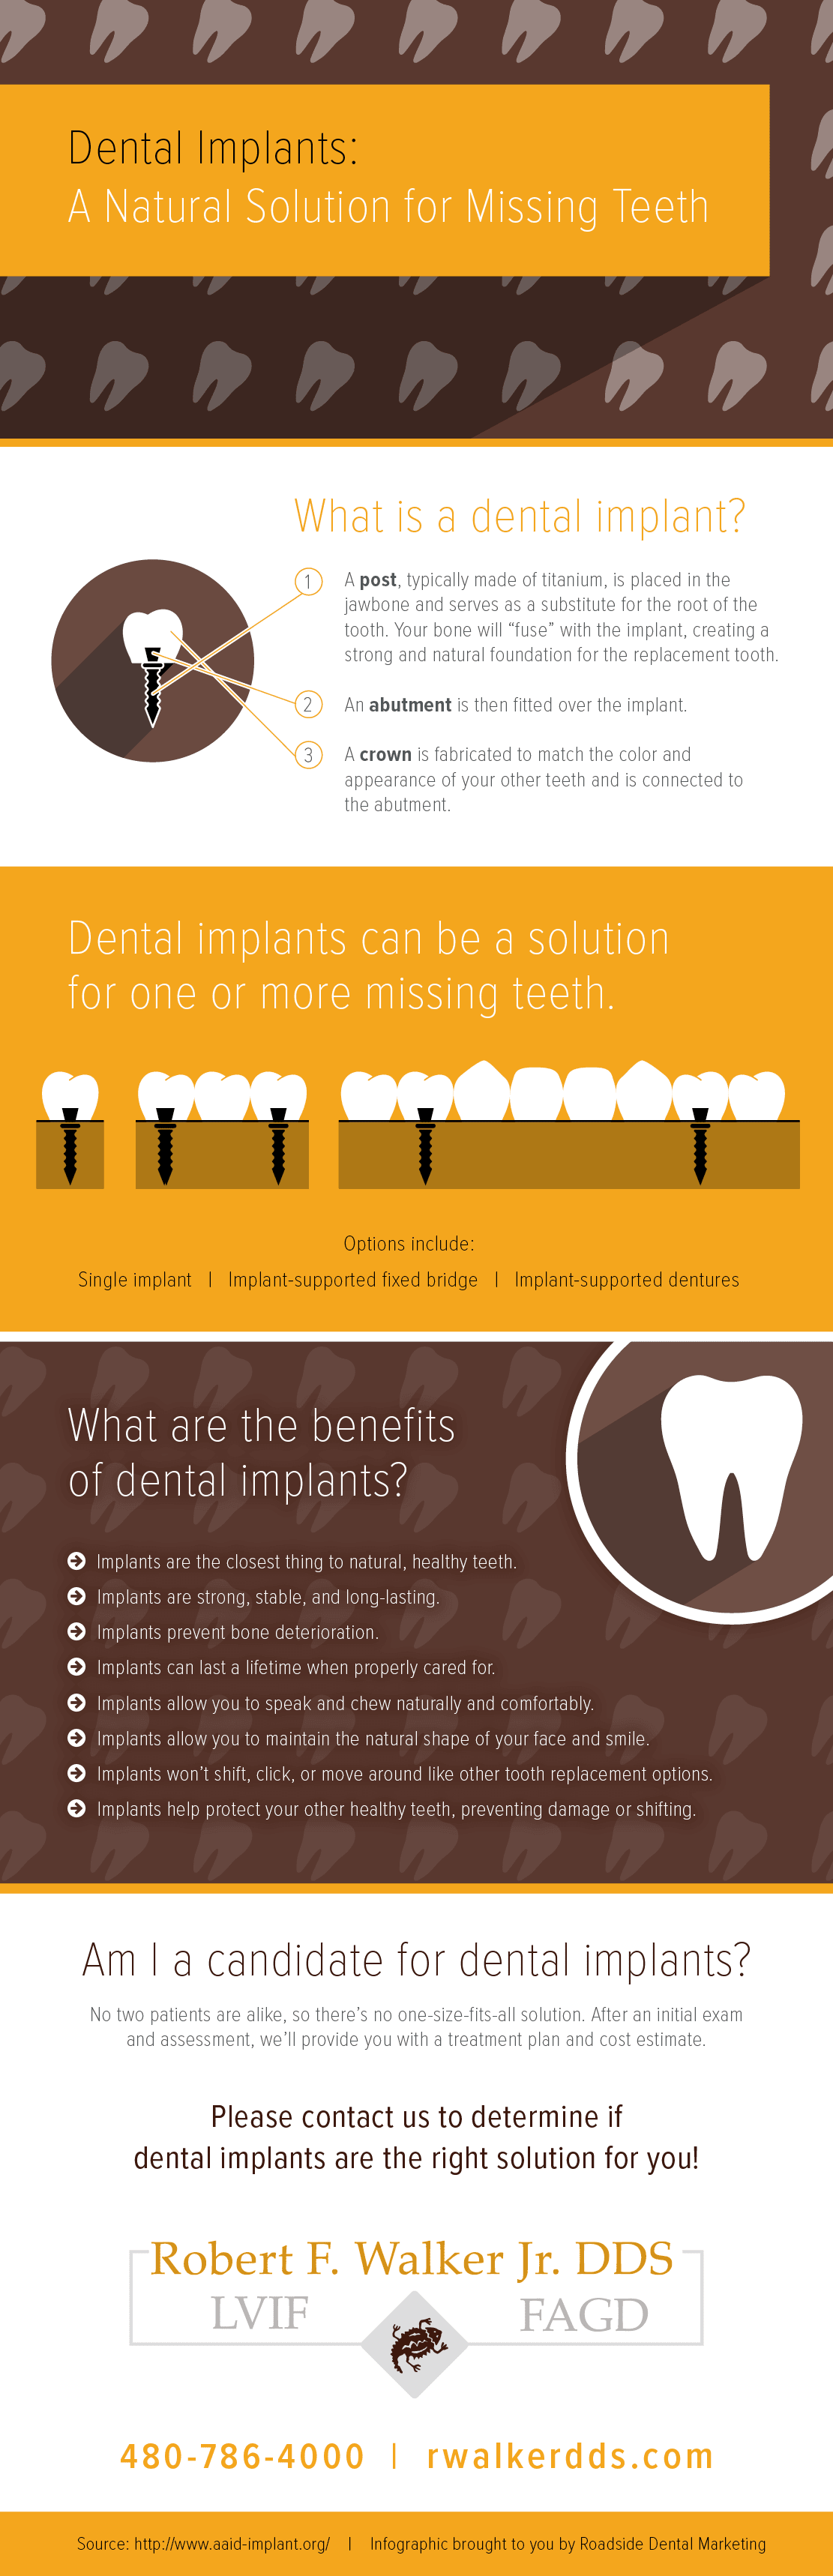 Infographic on Dental Implants: A Natural Solution for Missing Teeth